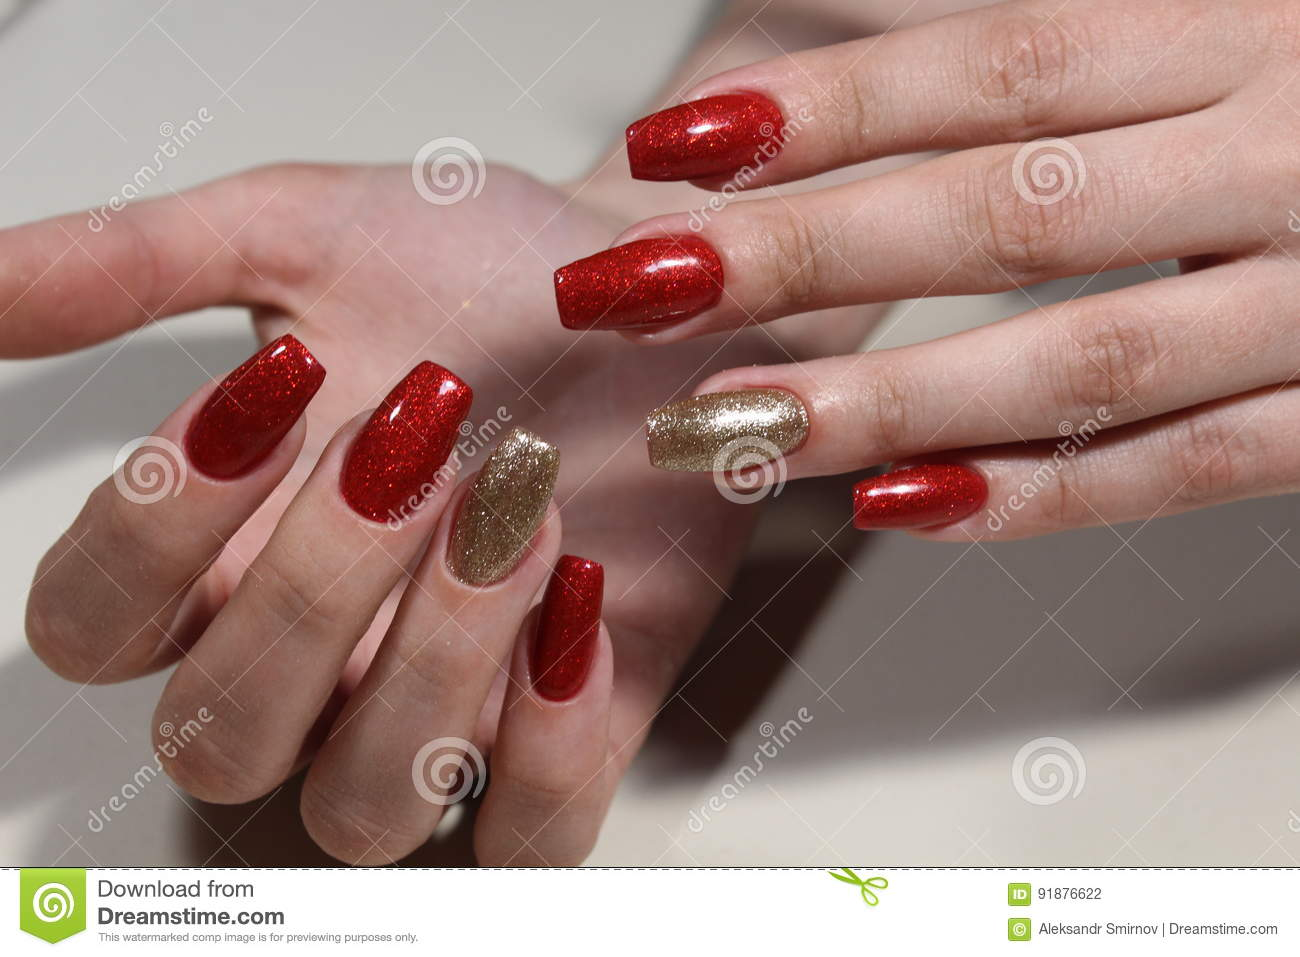 Manicure Nails Extensively Bright Red And Gold Color Stock Photo